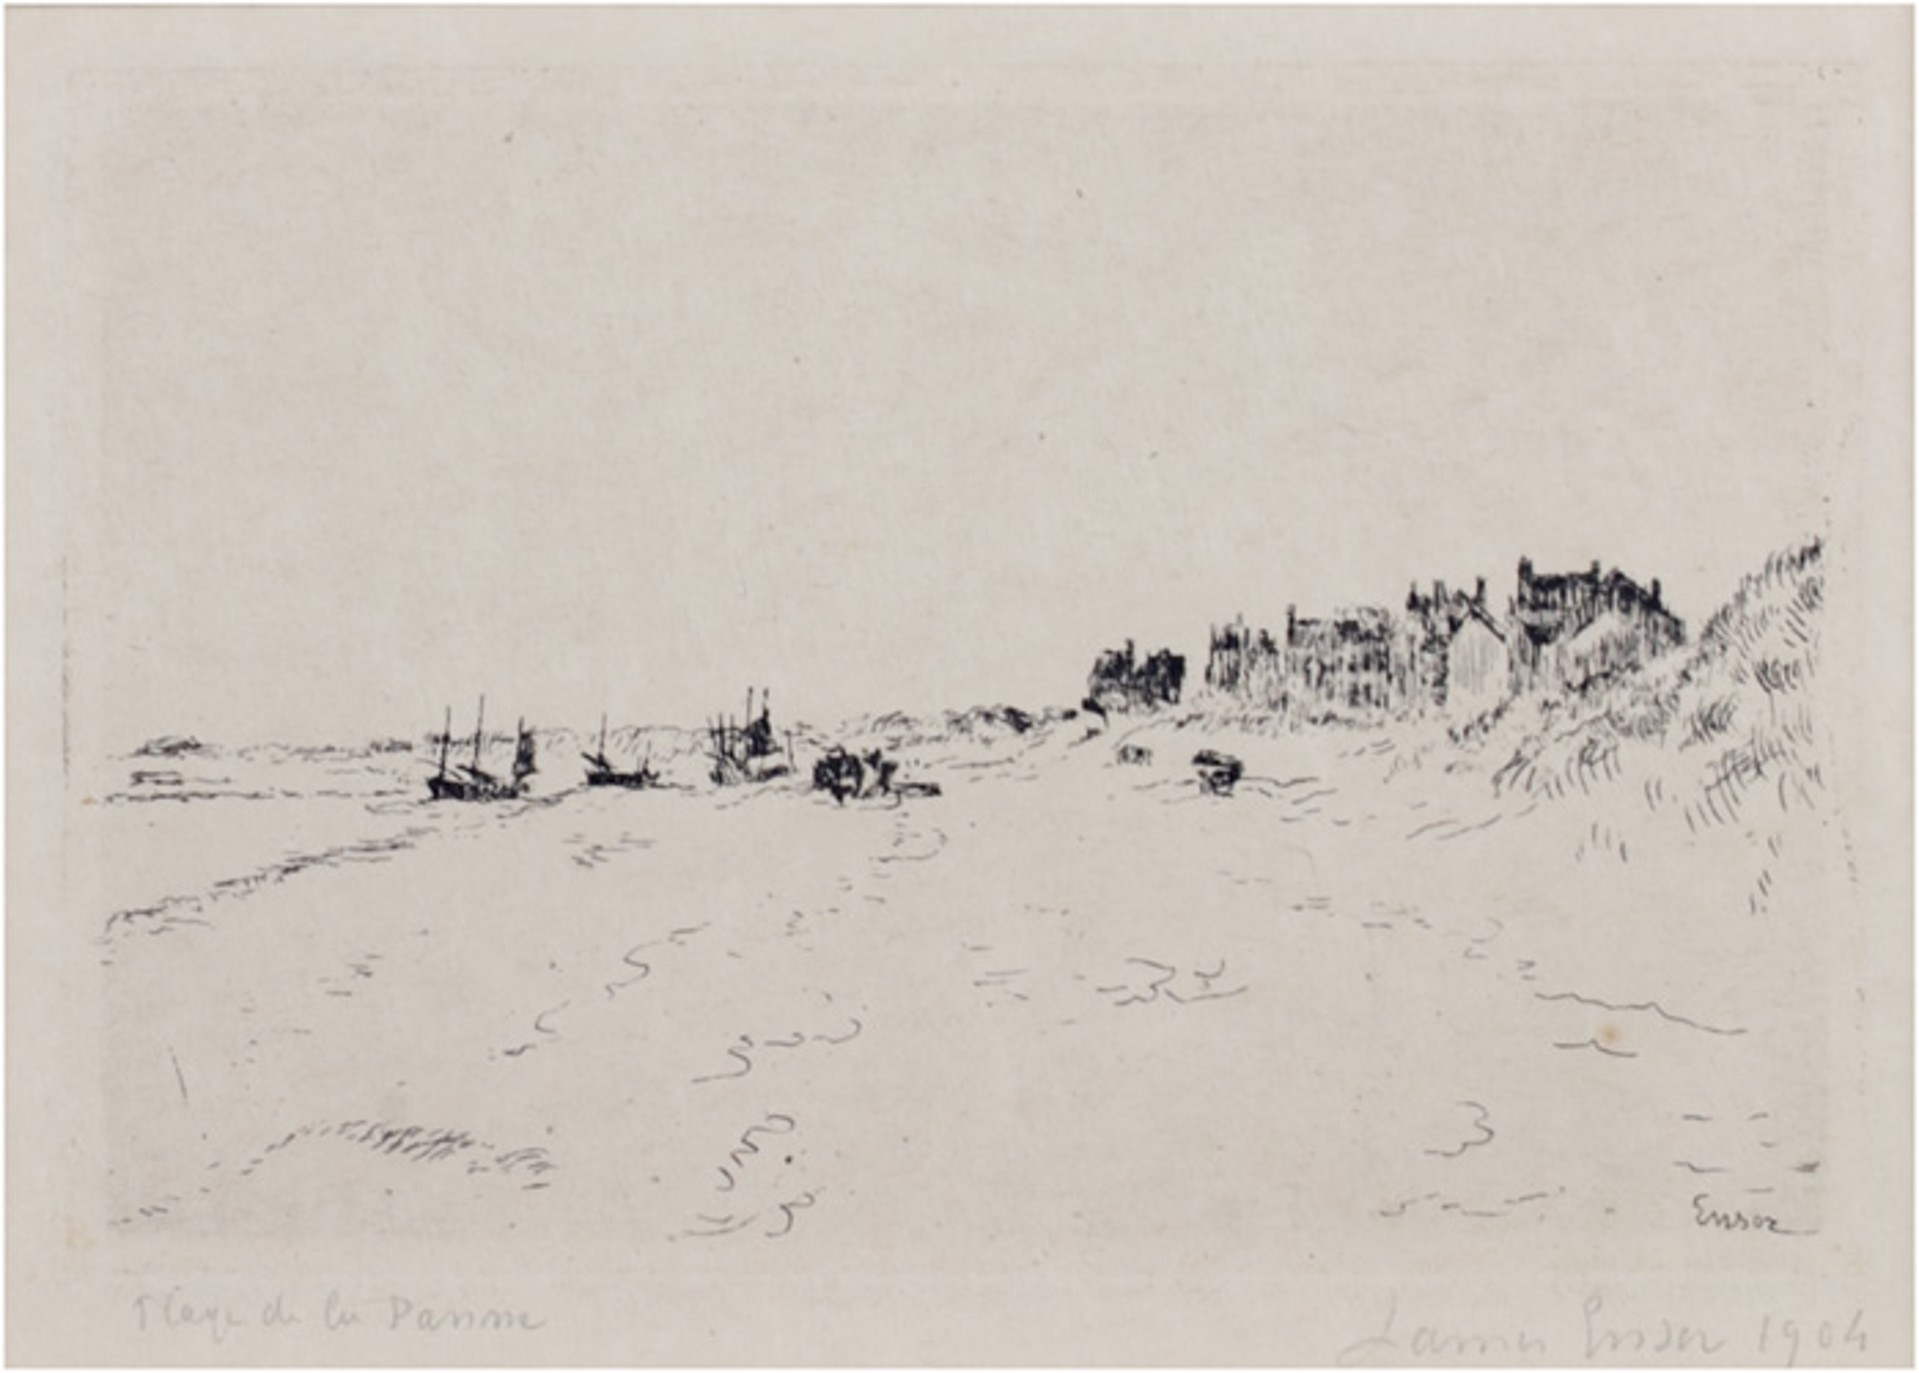 La Plage de la Panne Loys Delteil 129 volume XIX. James Ensor 134 by James Ensor